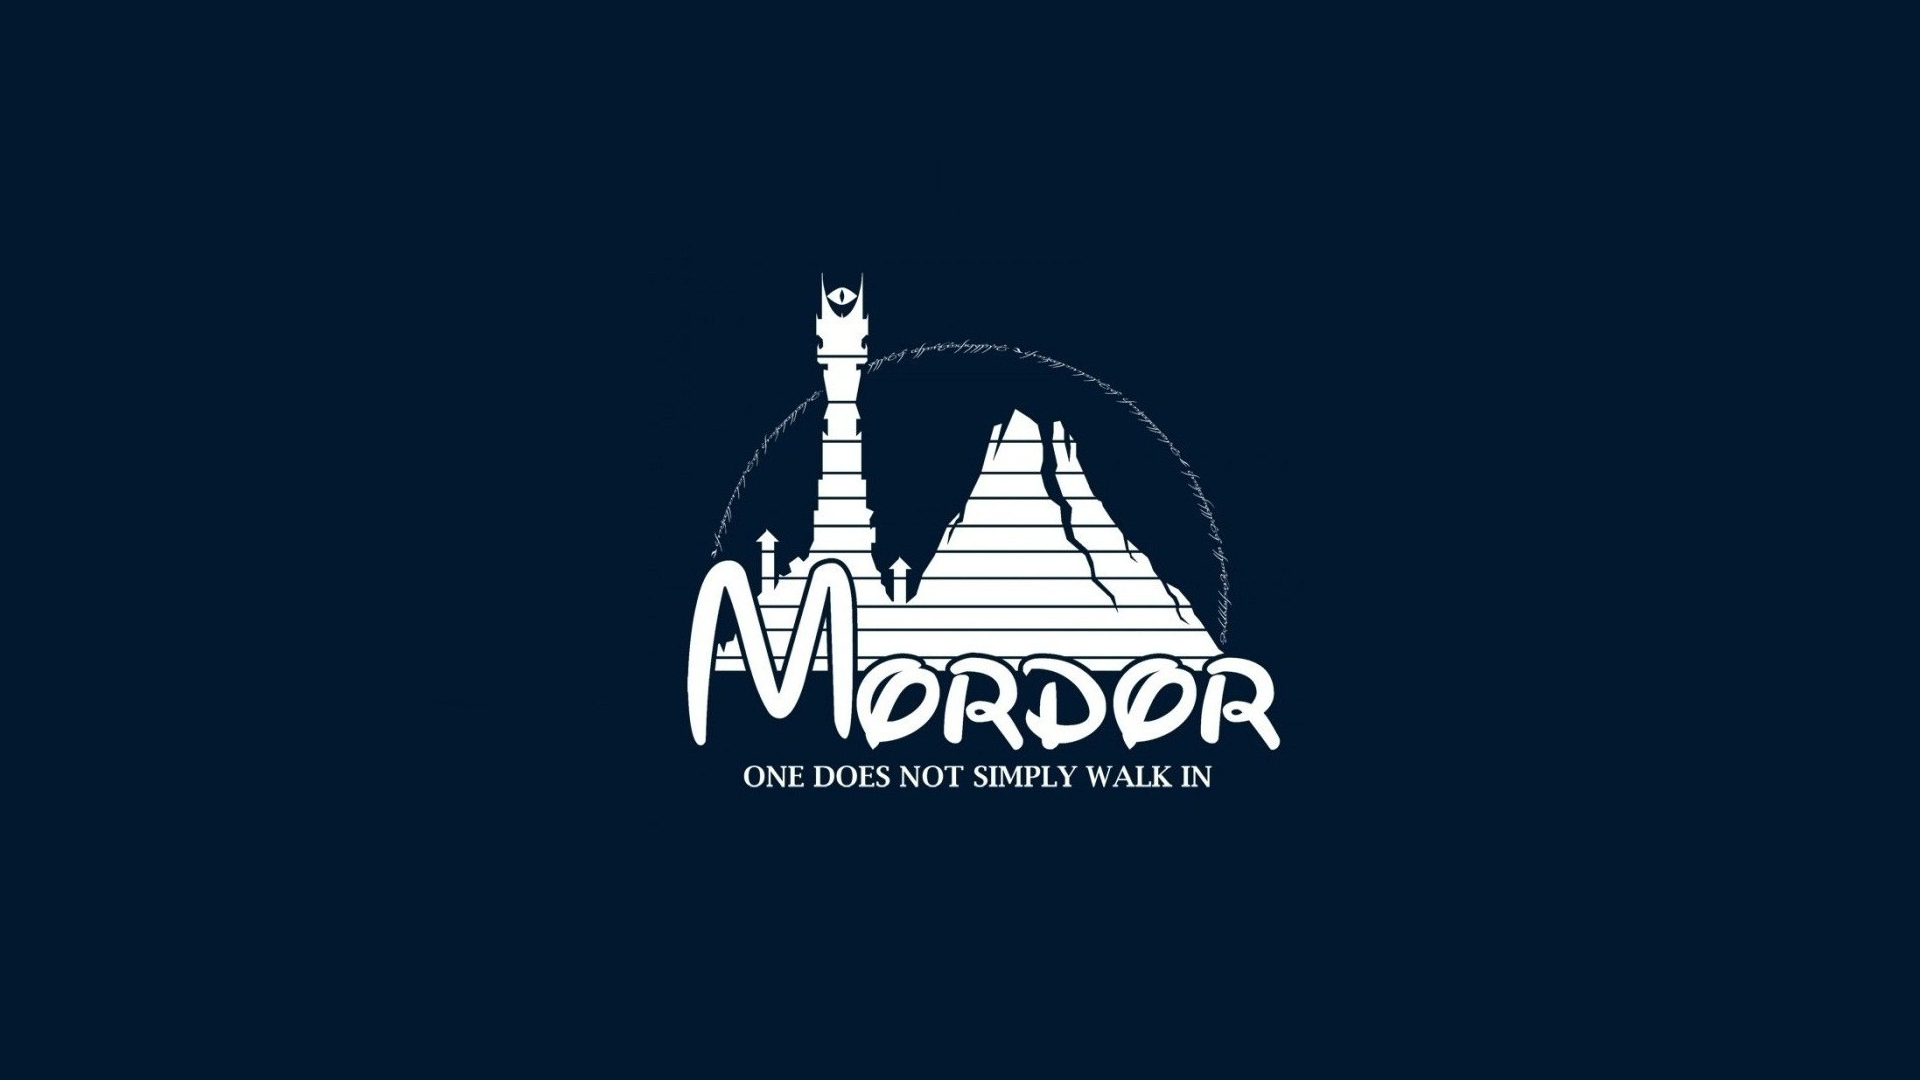 General 1920x1080 humor Middle-earth: Mordor minimalism Walt Disney The Lord of the Rings Mordor text blue